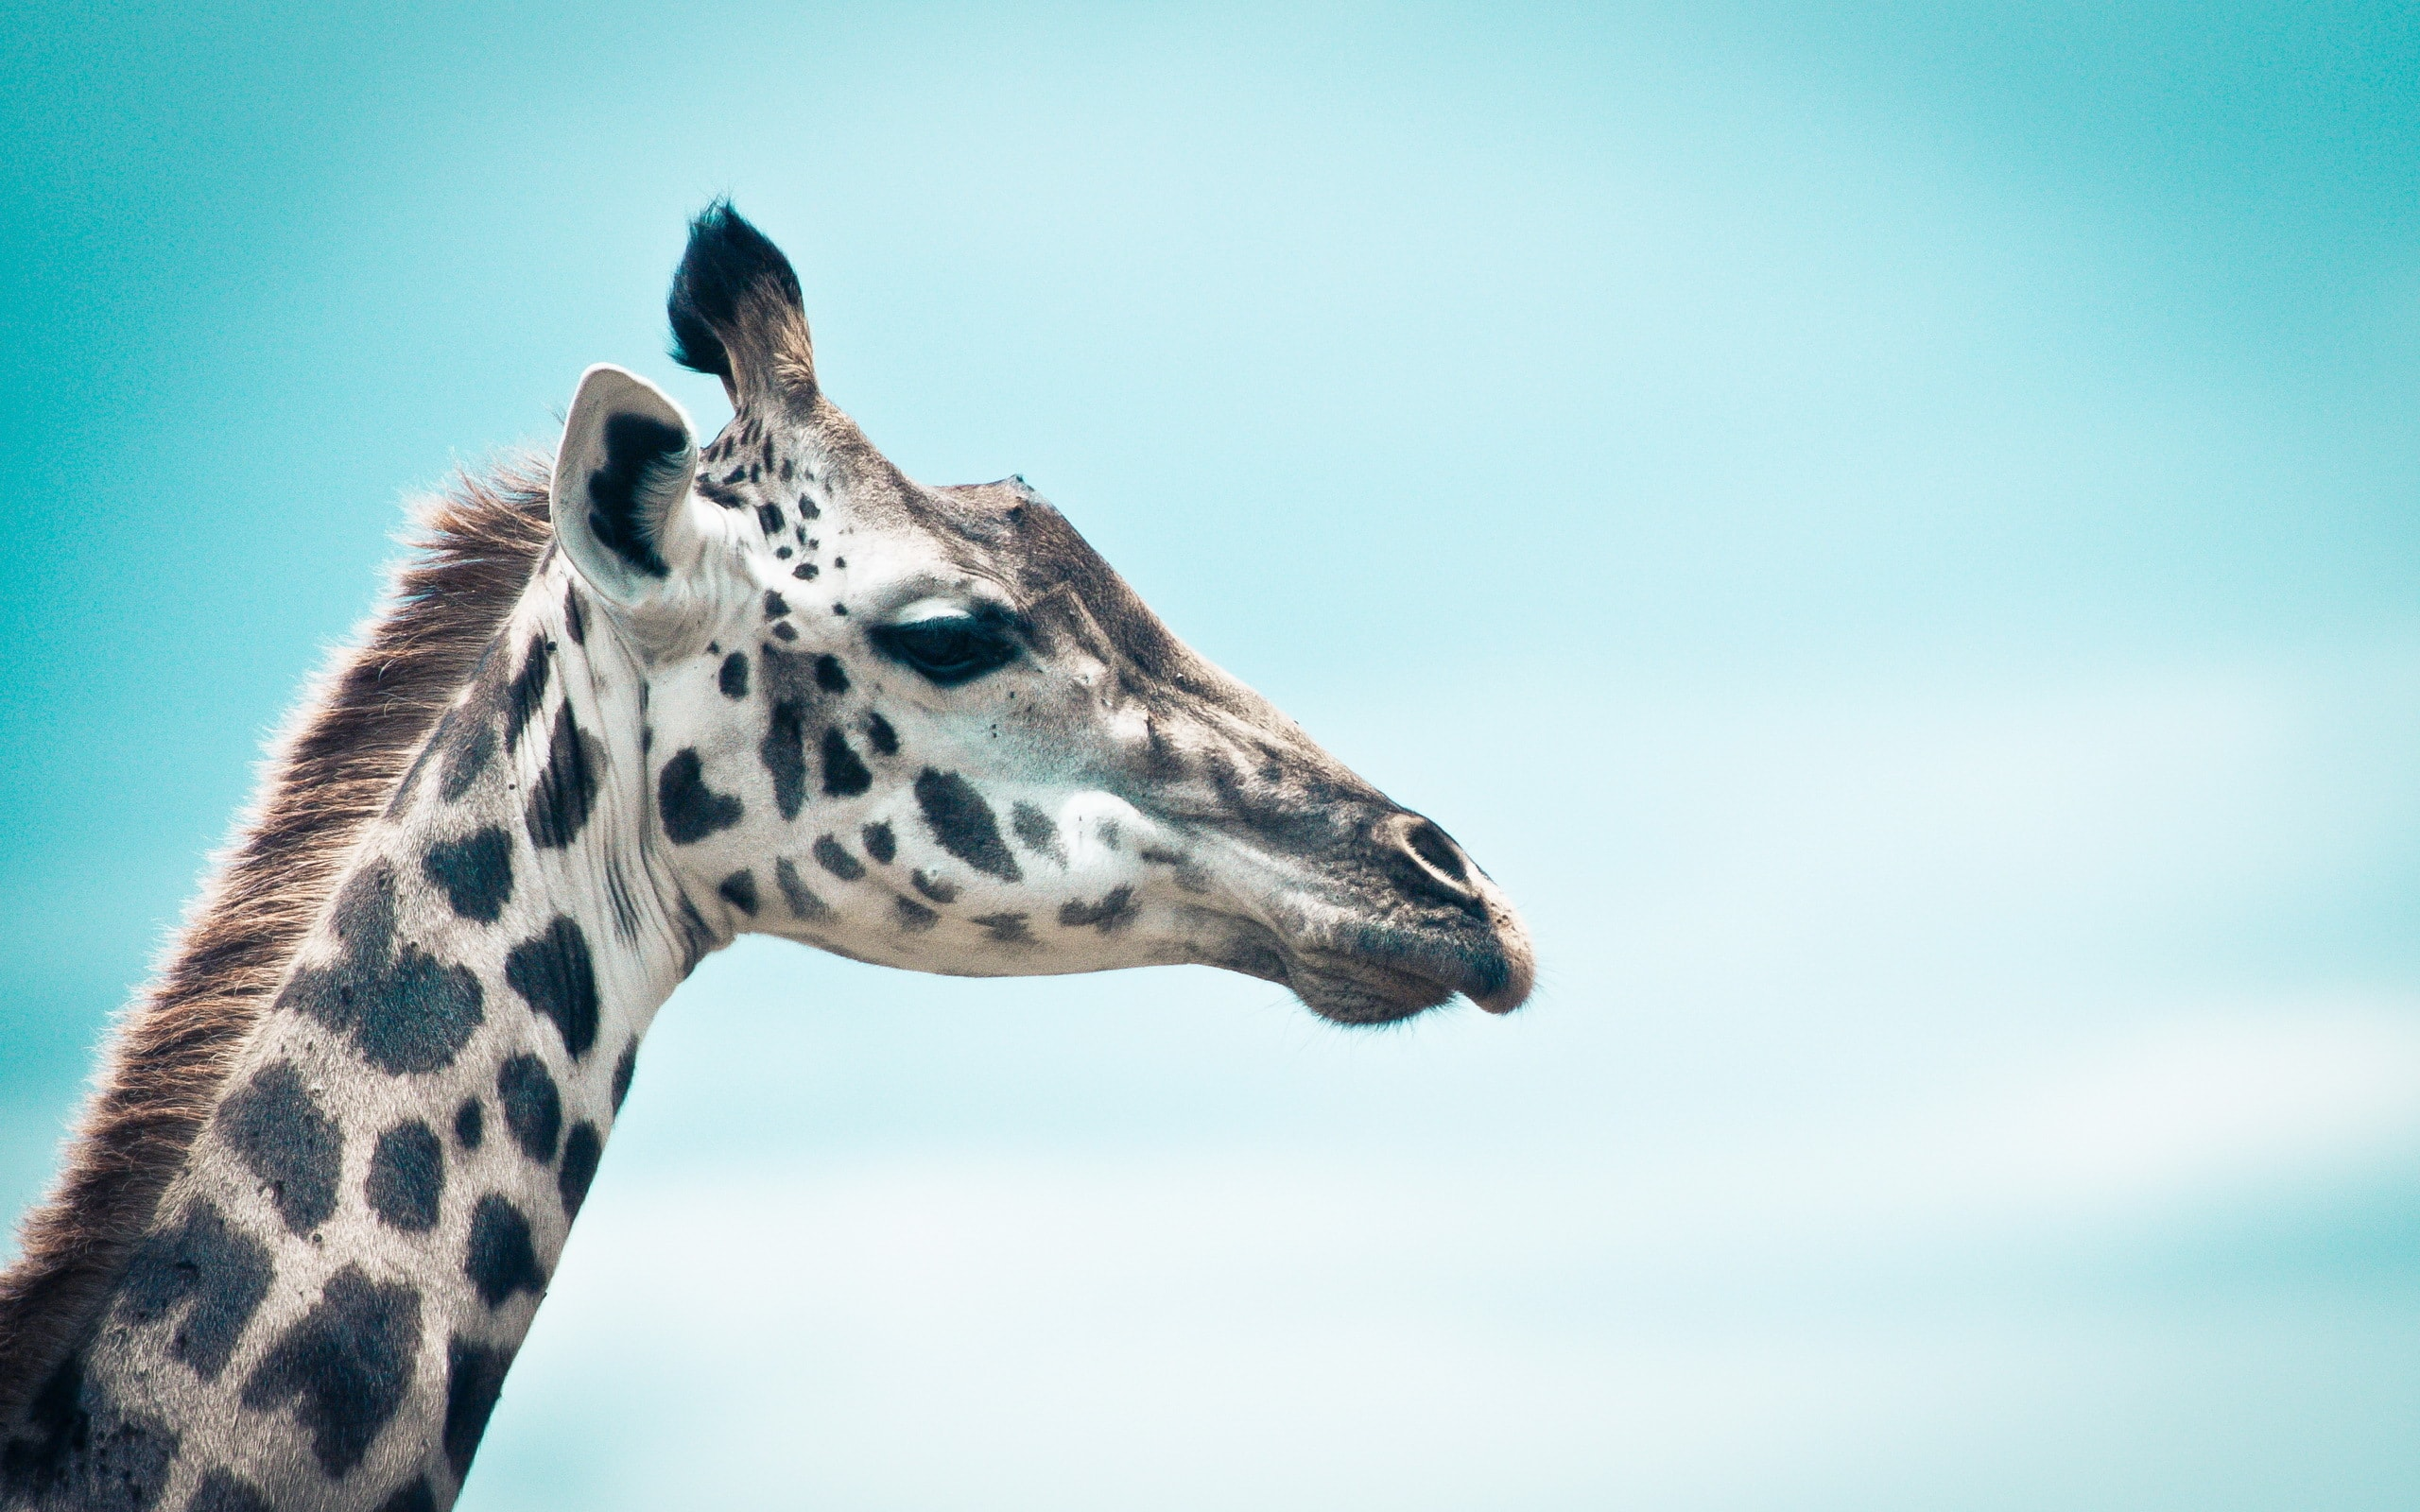 Giraffe widescreen wallpapers